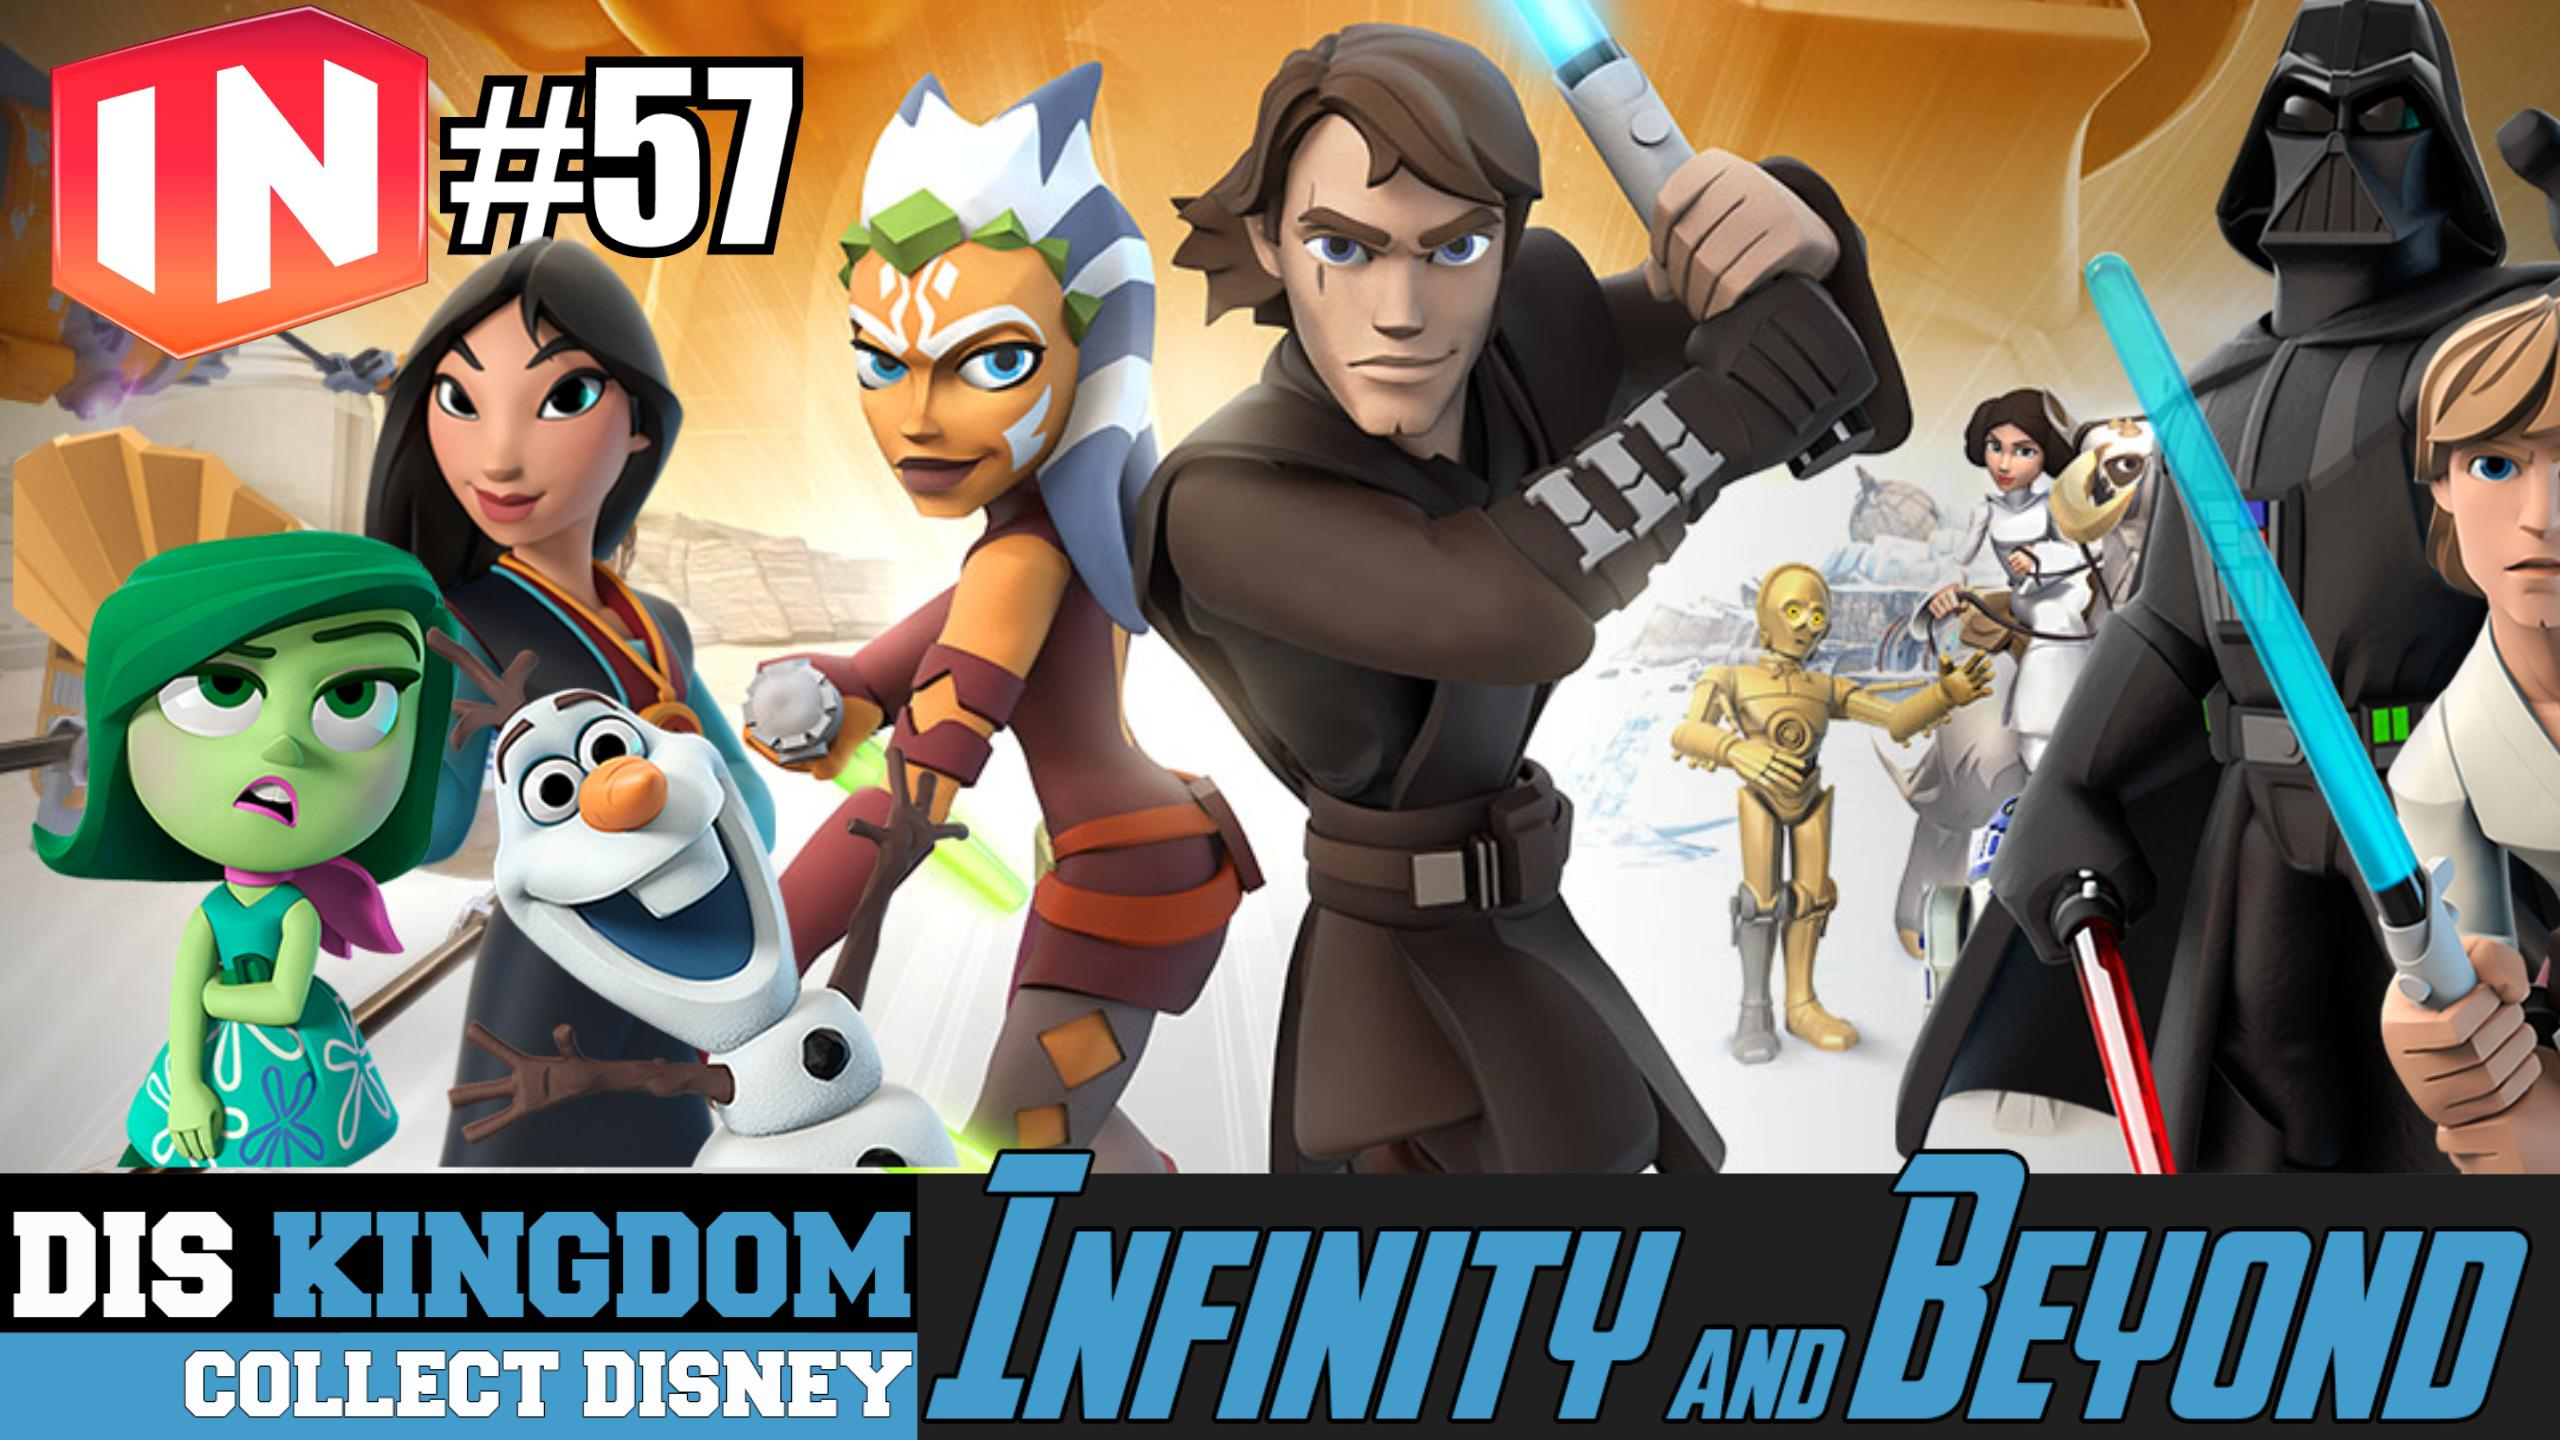 Disney Infinity 3.0 & Beyond #57 – Launch Special